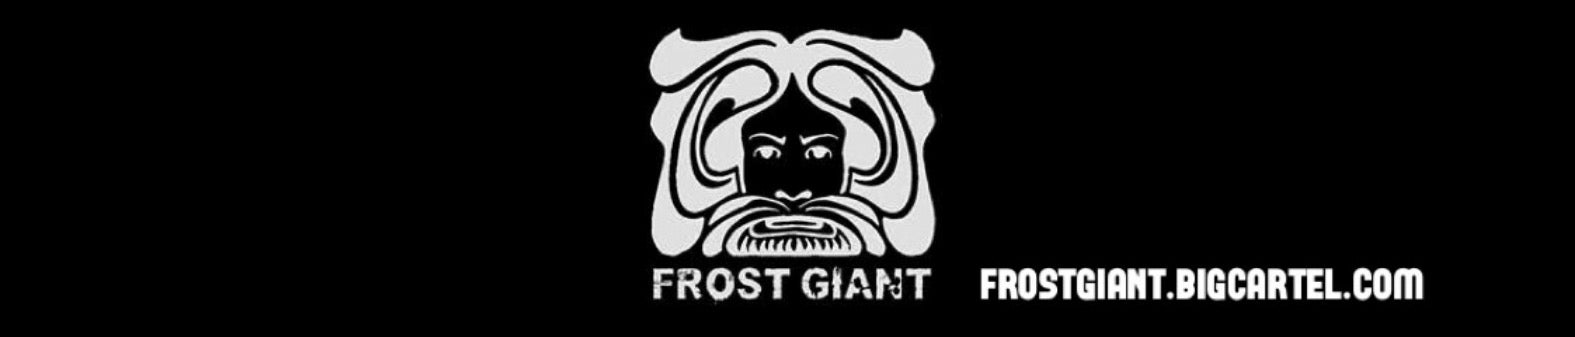 Frost Giant Prints